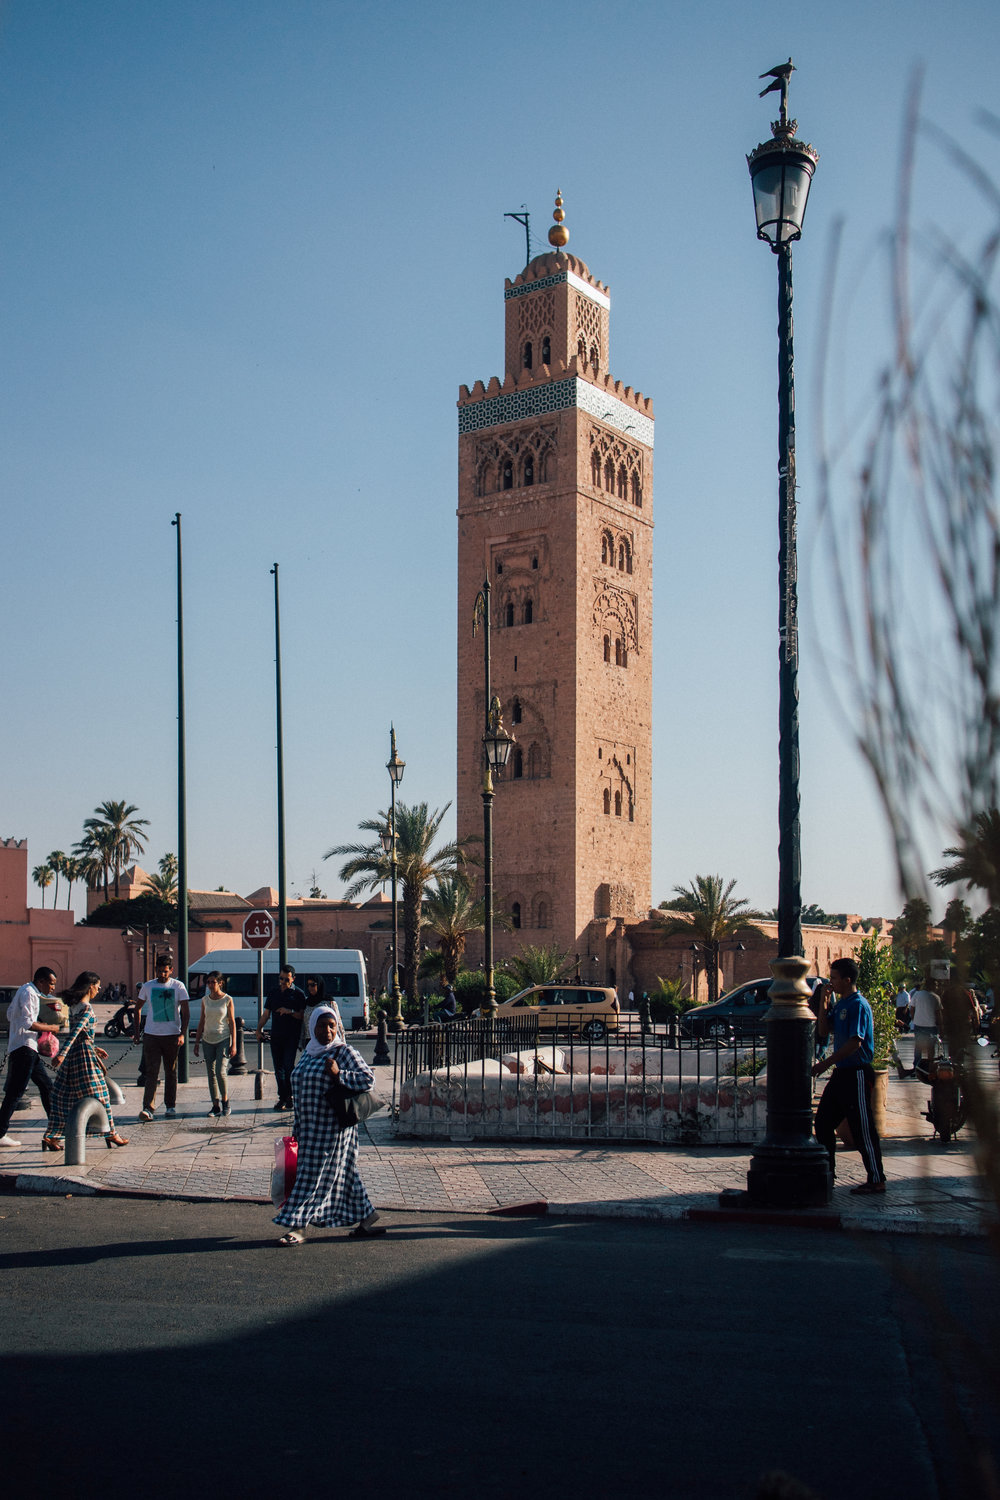 Marrakech by Jorge Güiro 112.jpg